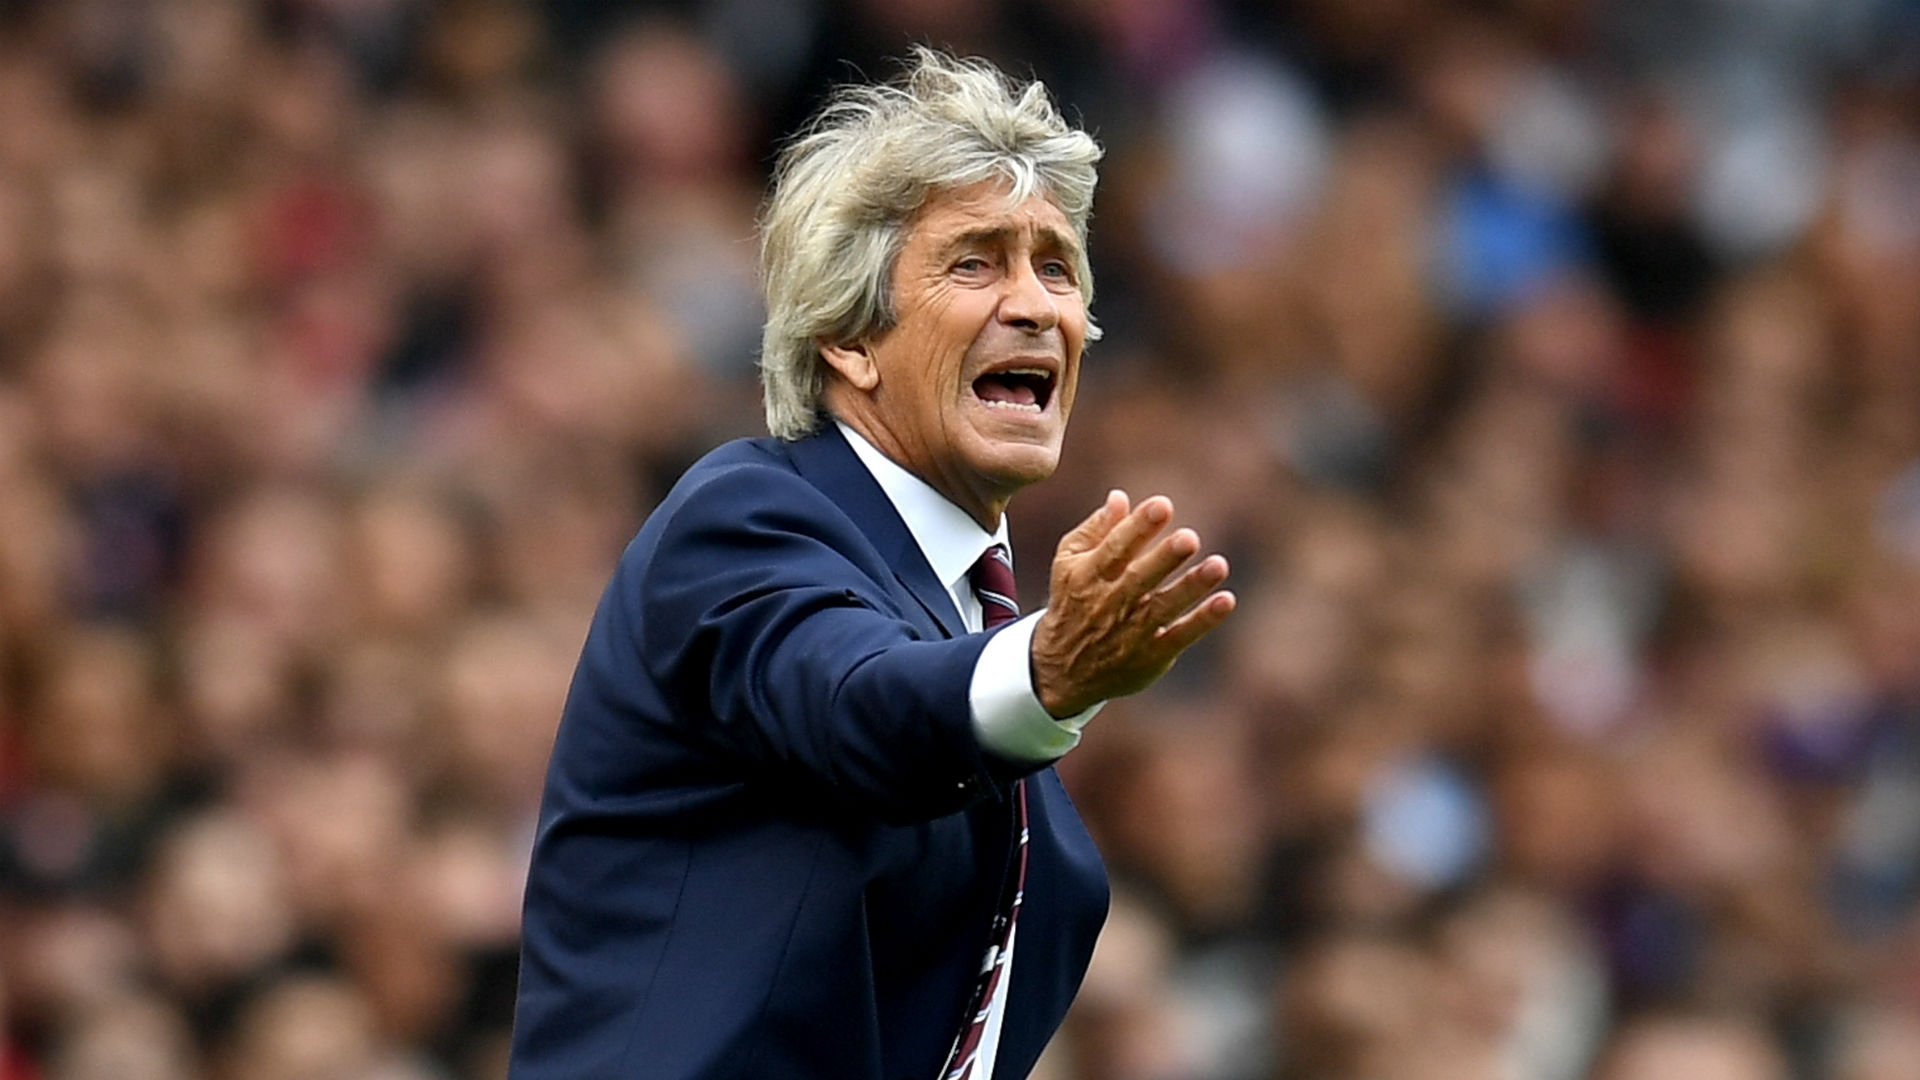 Manuel Pellegrini - West Ham, formerly of Real Madrid